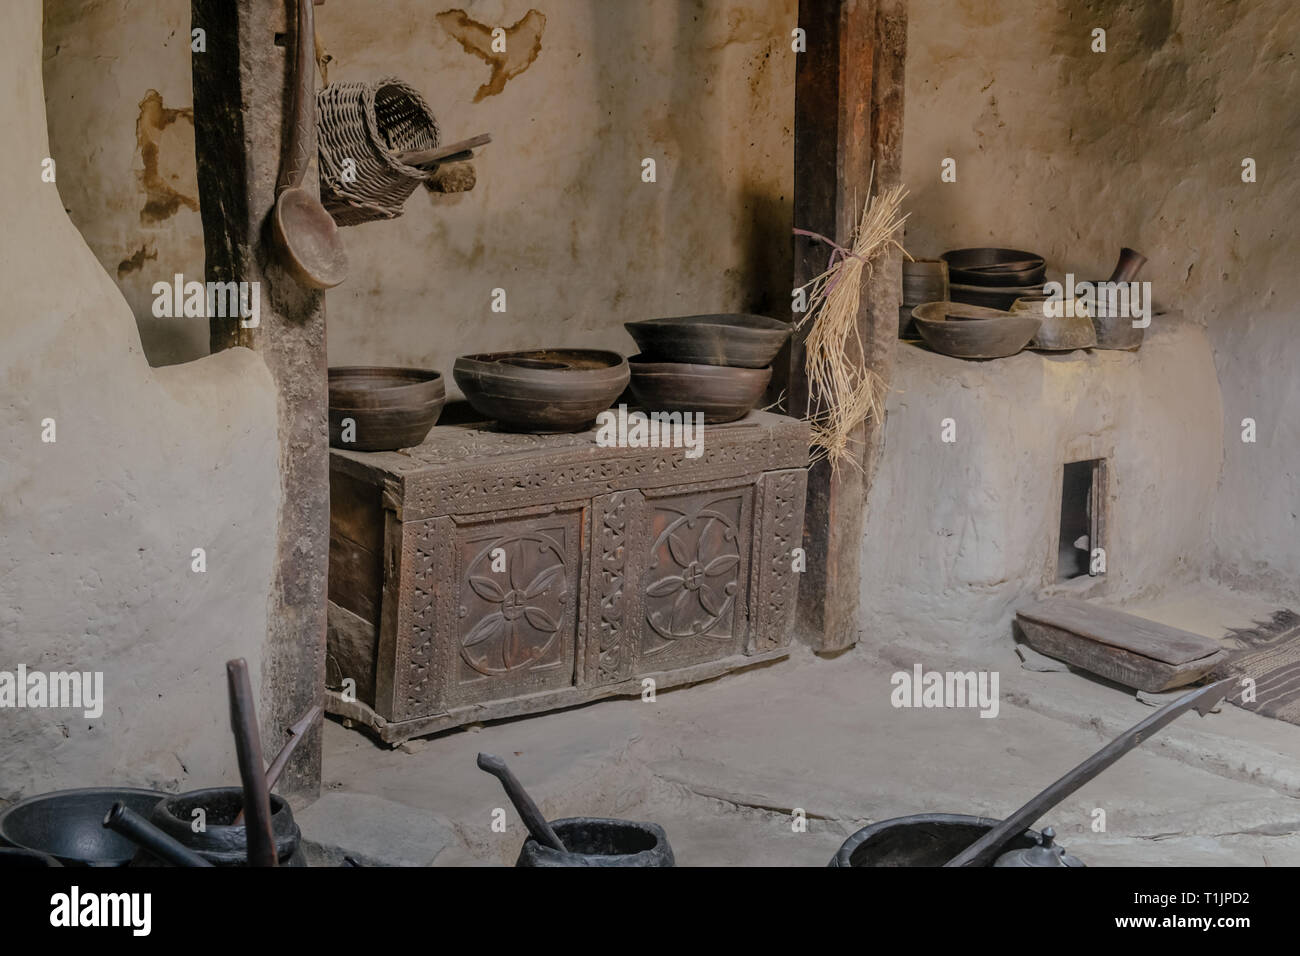 Kitchenware in the ancient Baltit fort. Karimabad, Hunza valley. Gilgit Baltistan, Pakistan. - Stock Image